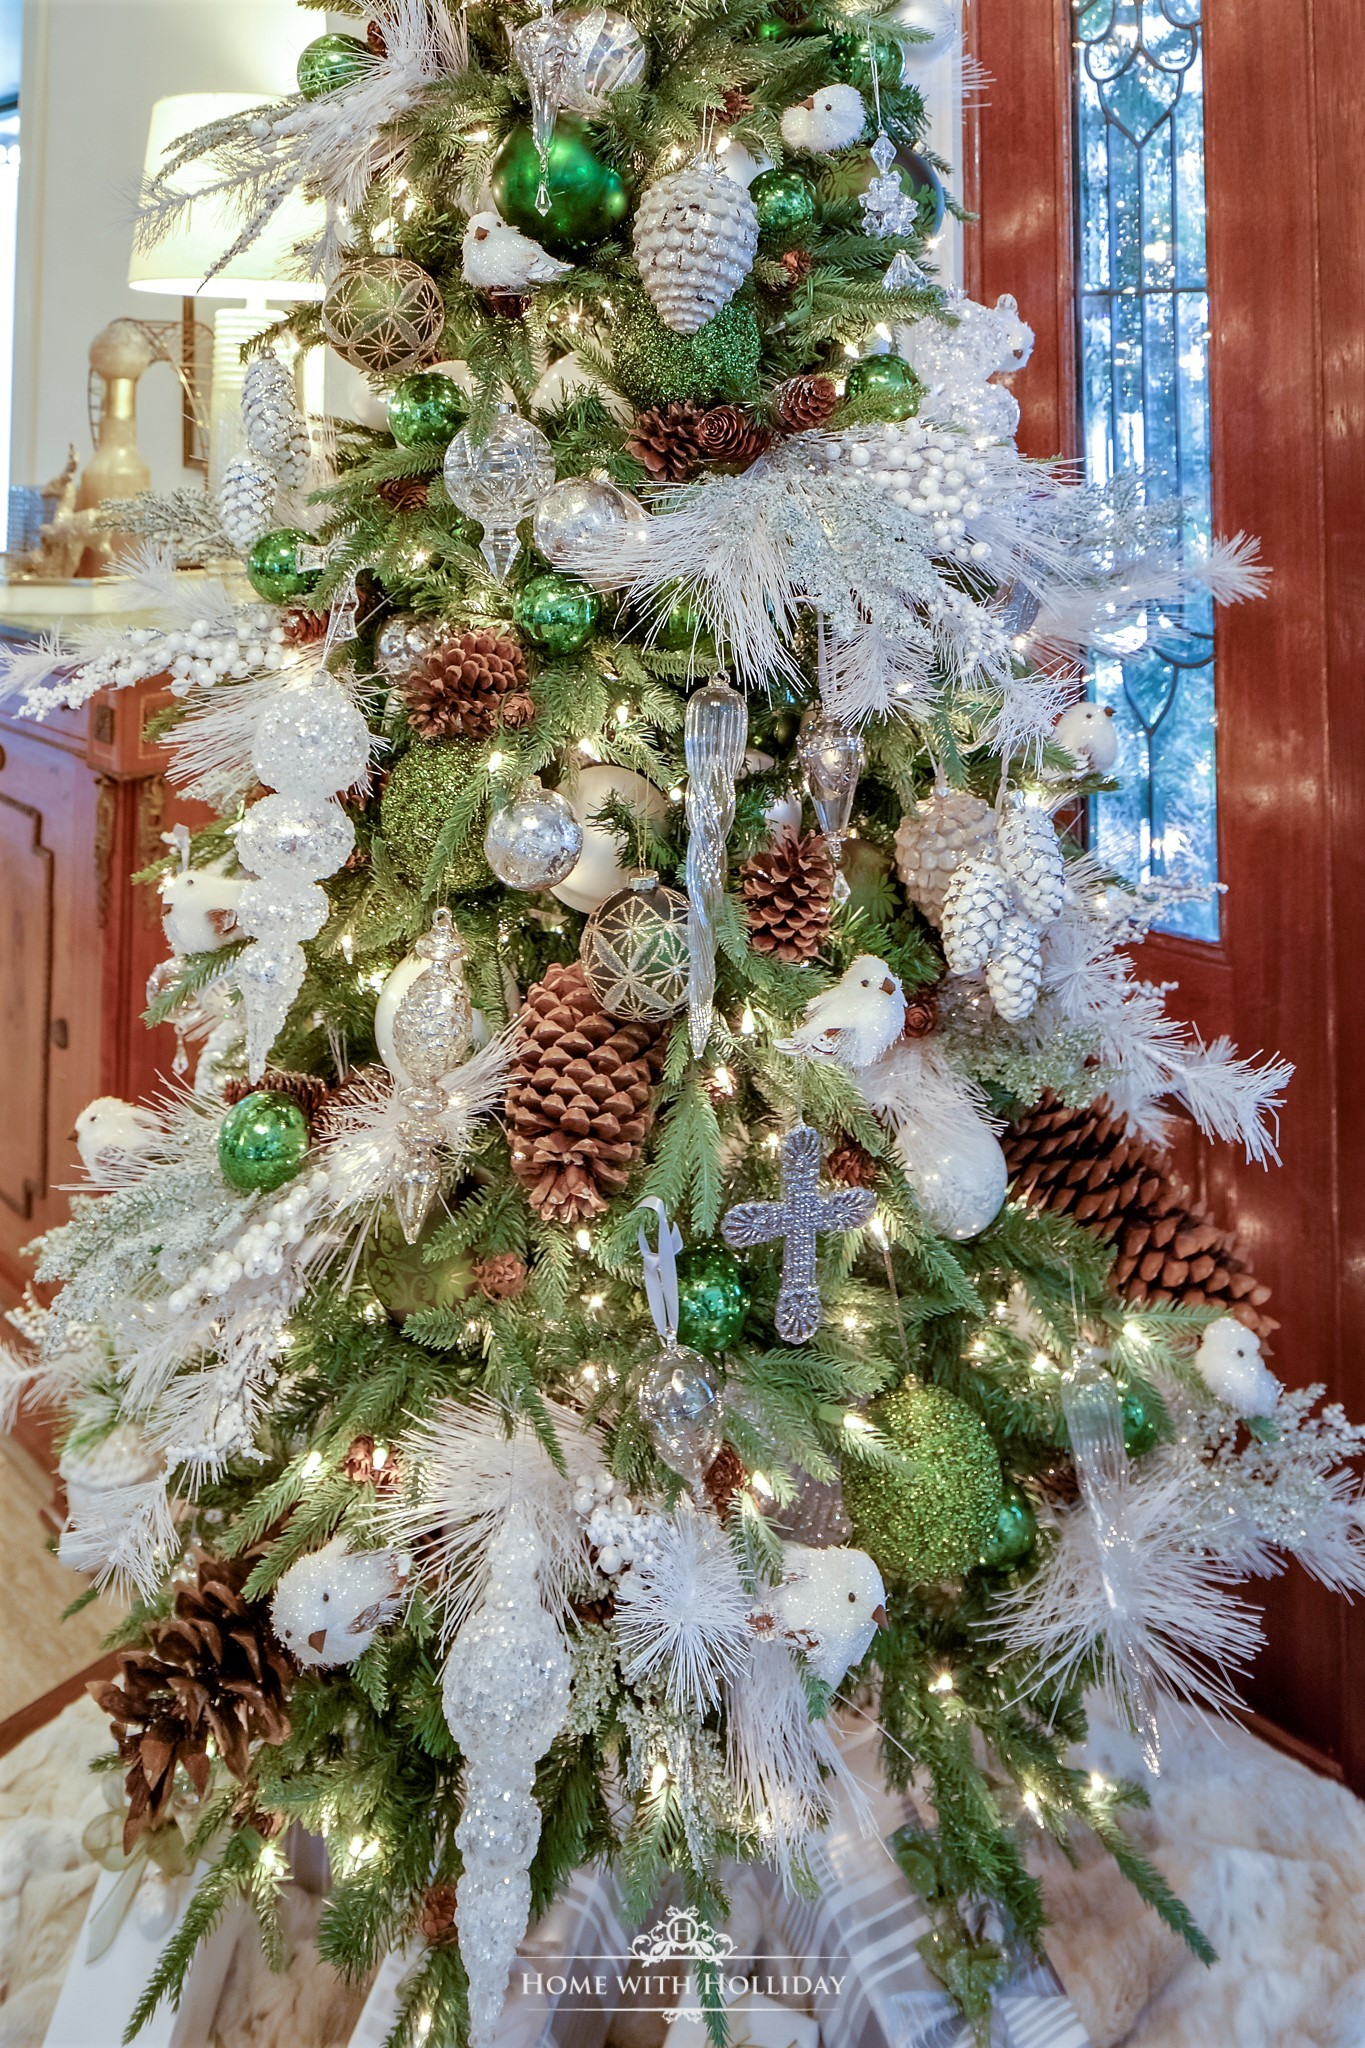 My Christmas Home Tour - Green and White Winter Christmas Tree - Home with Holliday